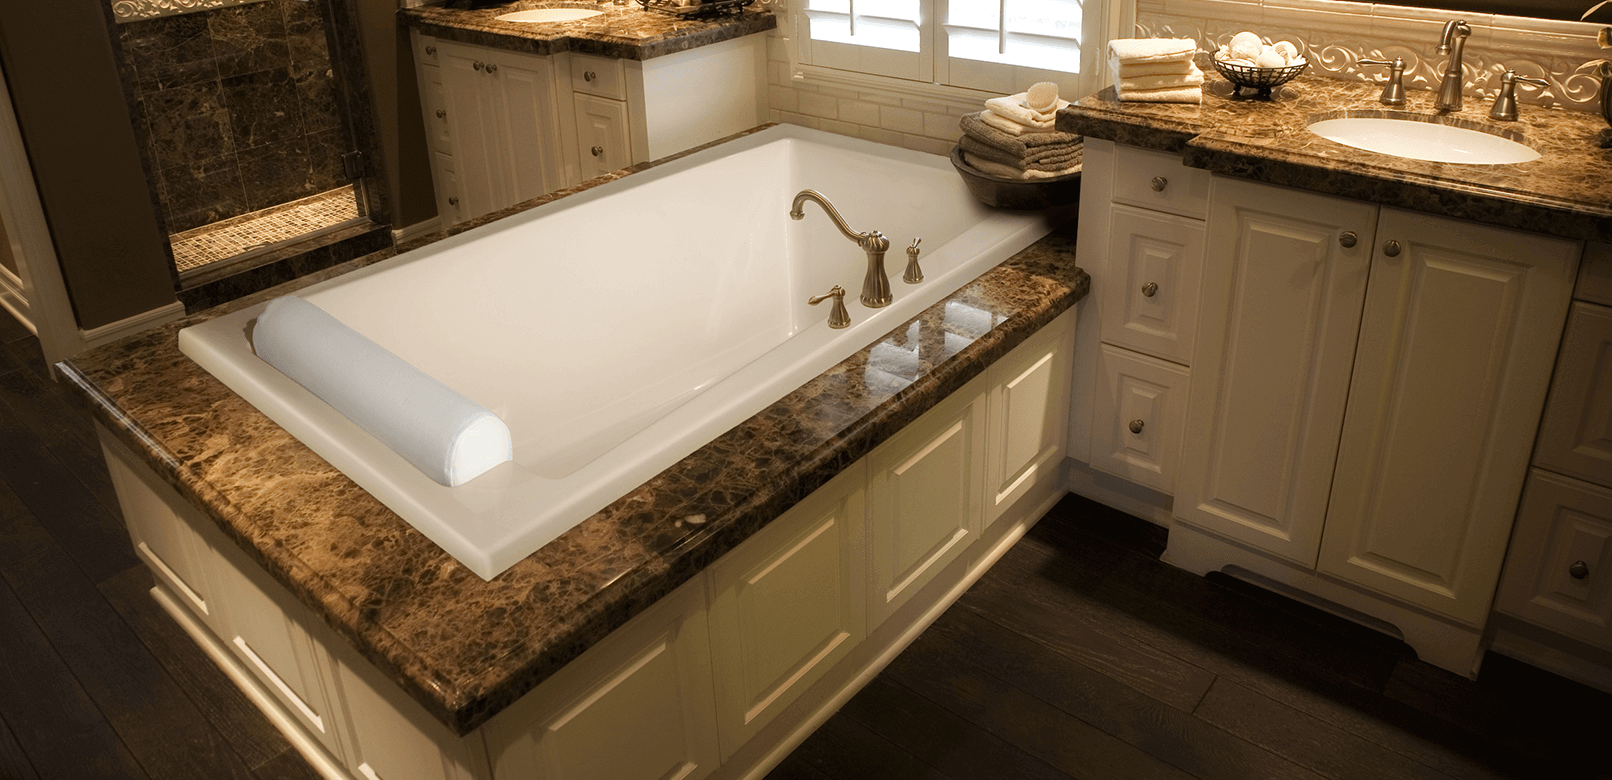 Wonderful Hydro Systems Customized Bathtubs | Hydrosystems